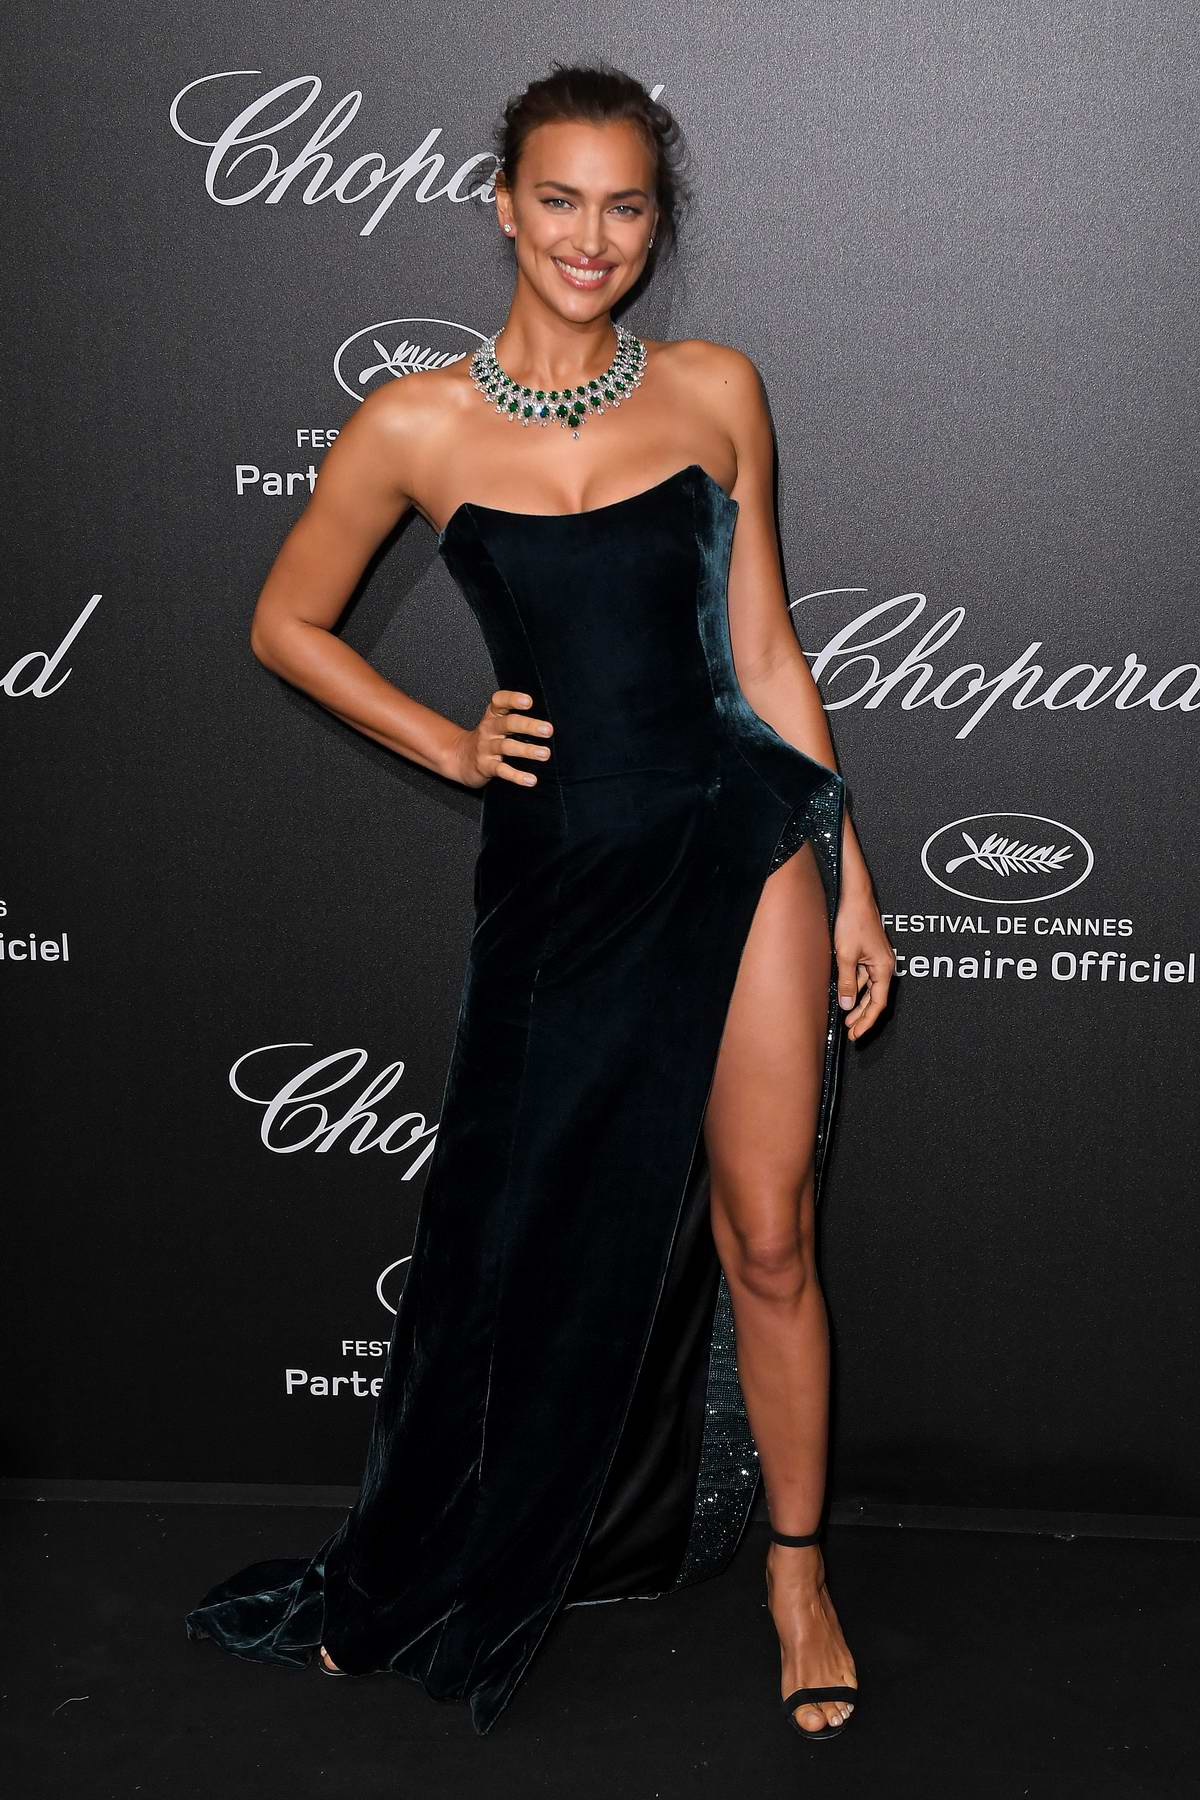 Irina Shayk attends Secret Chopard party during the 71st Cannes Film Festival in Cannes, France